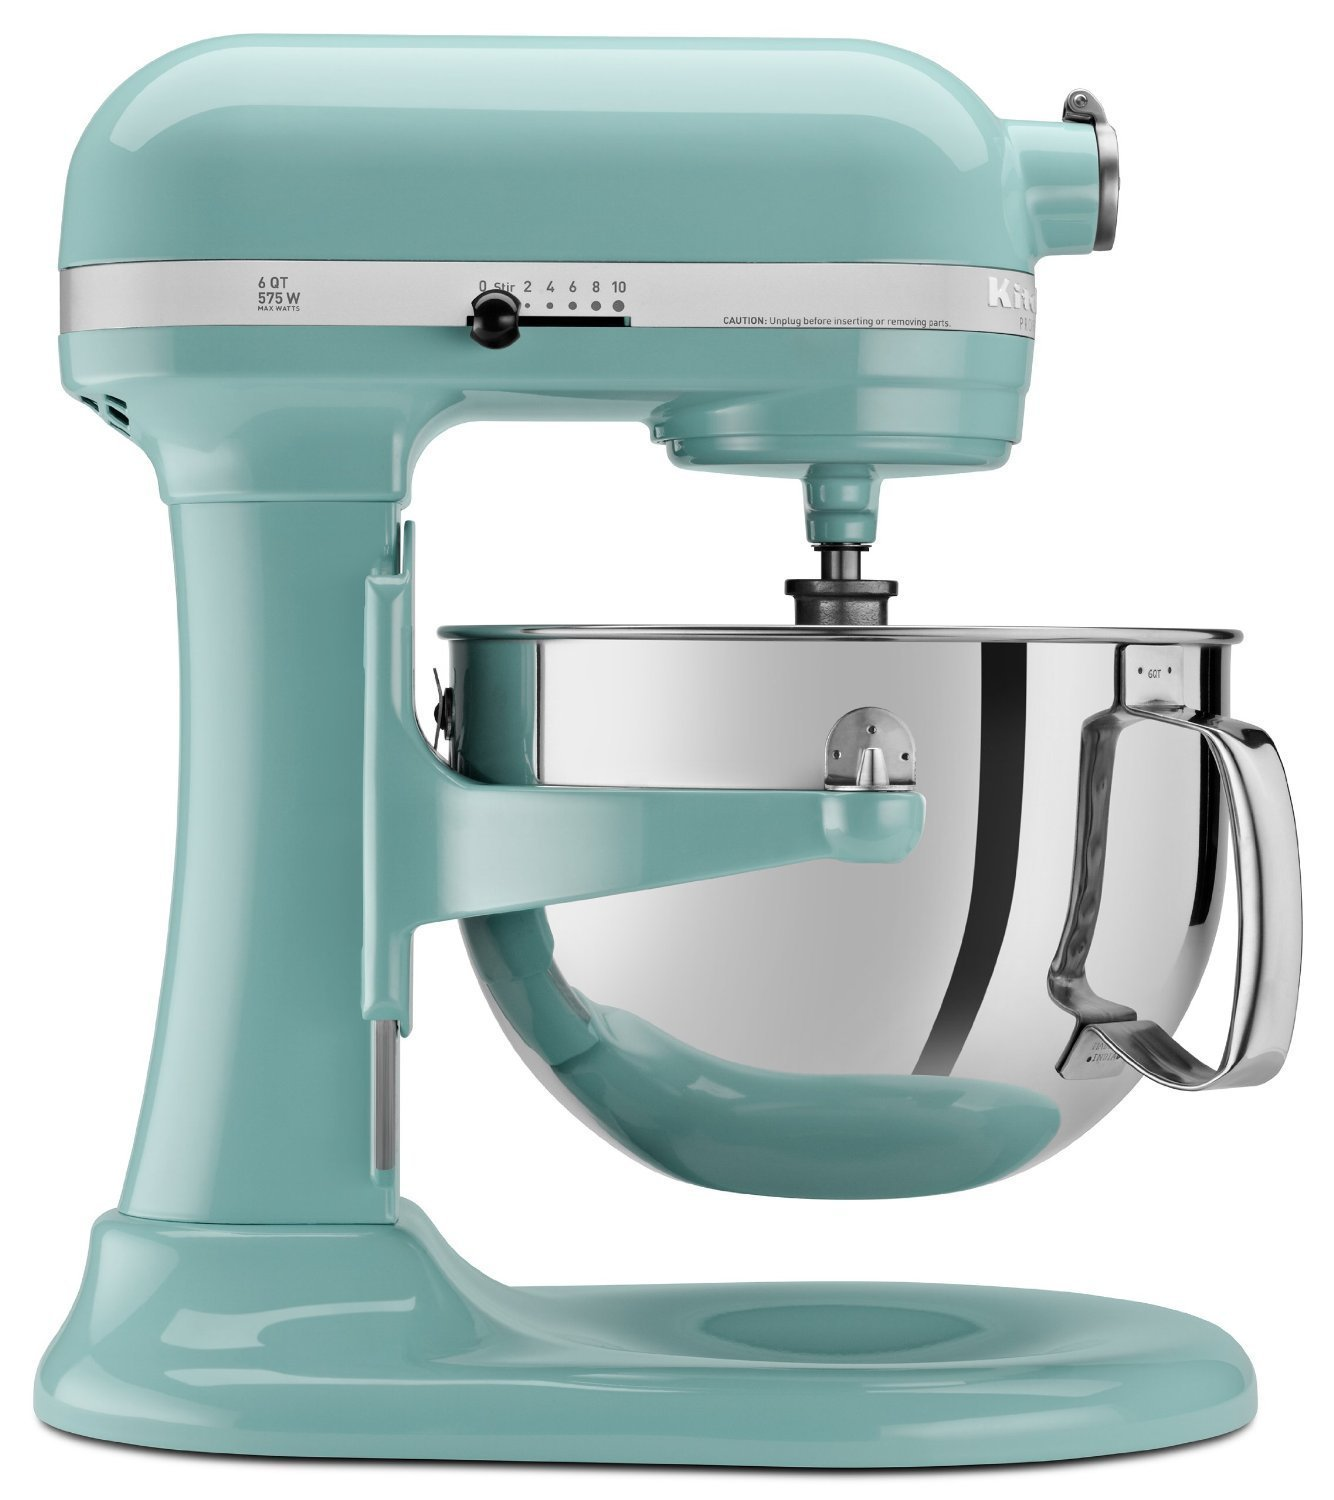 Amazon.com: KitchenAid kp26m1xaq5 Professional Series 6-Quart Stand ...